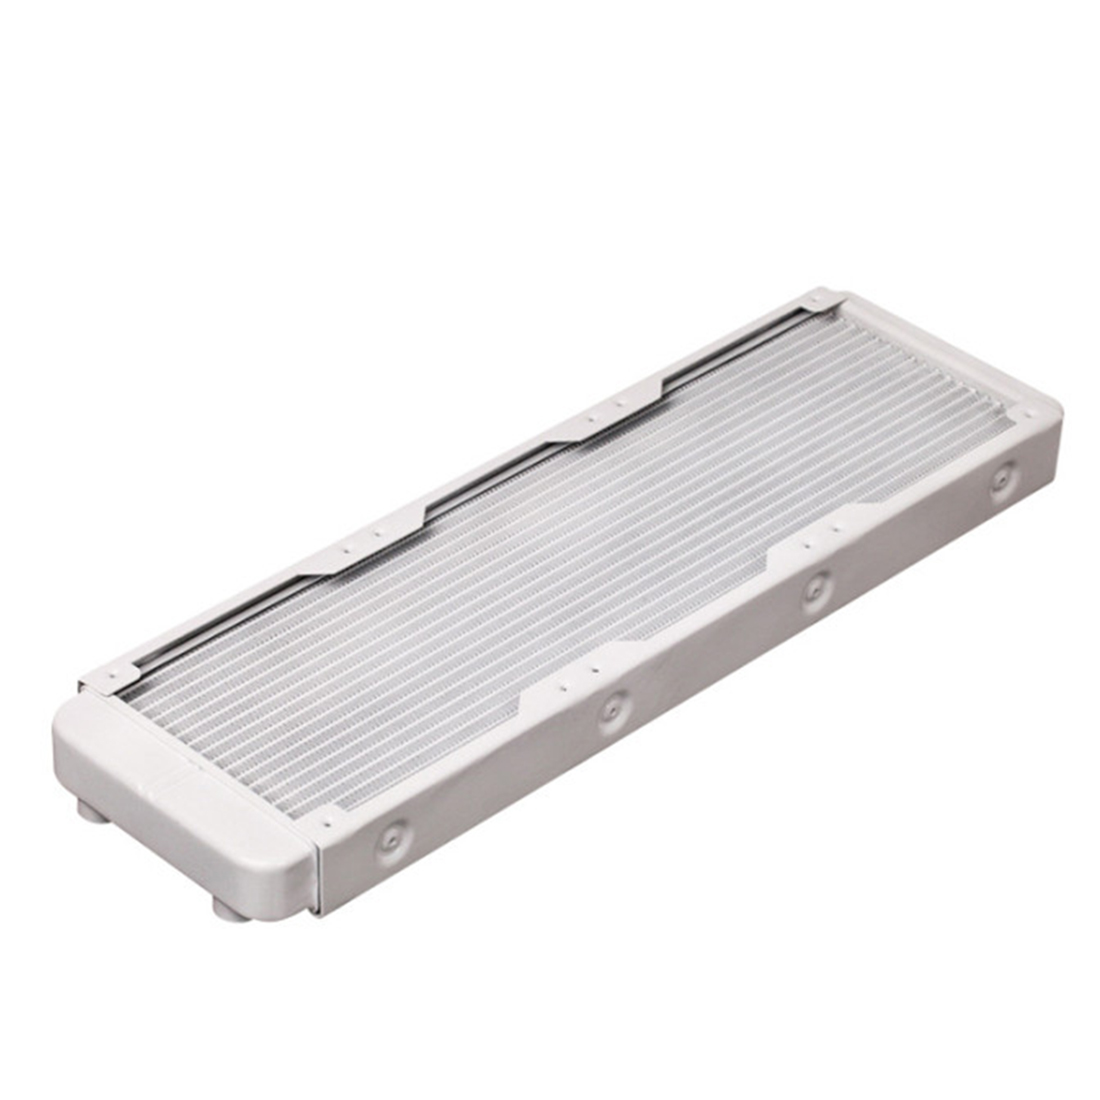 360mm Aluminum Computer Radiator Water Cooler Cooling Heatsink Exchanger Water Cool System For Computer - White/Black